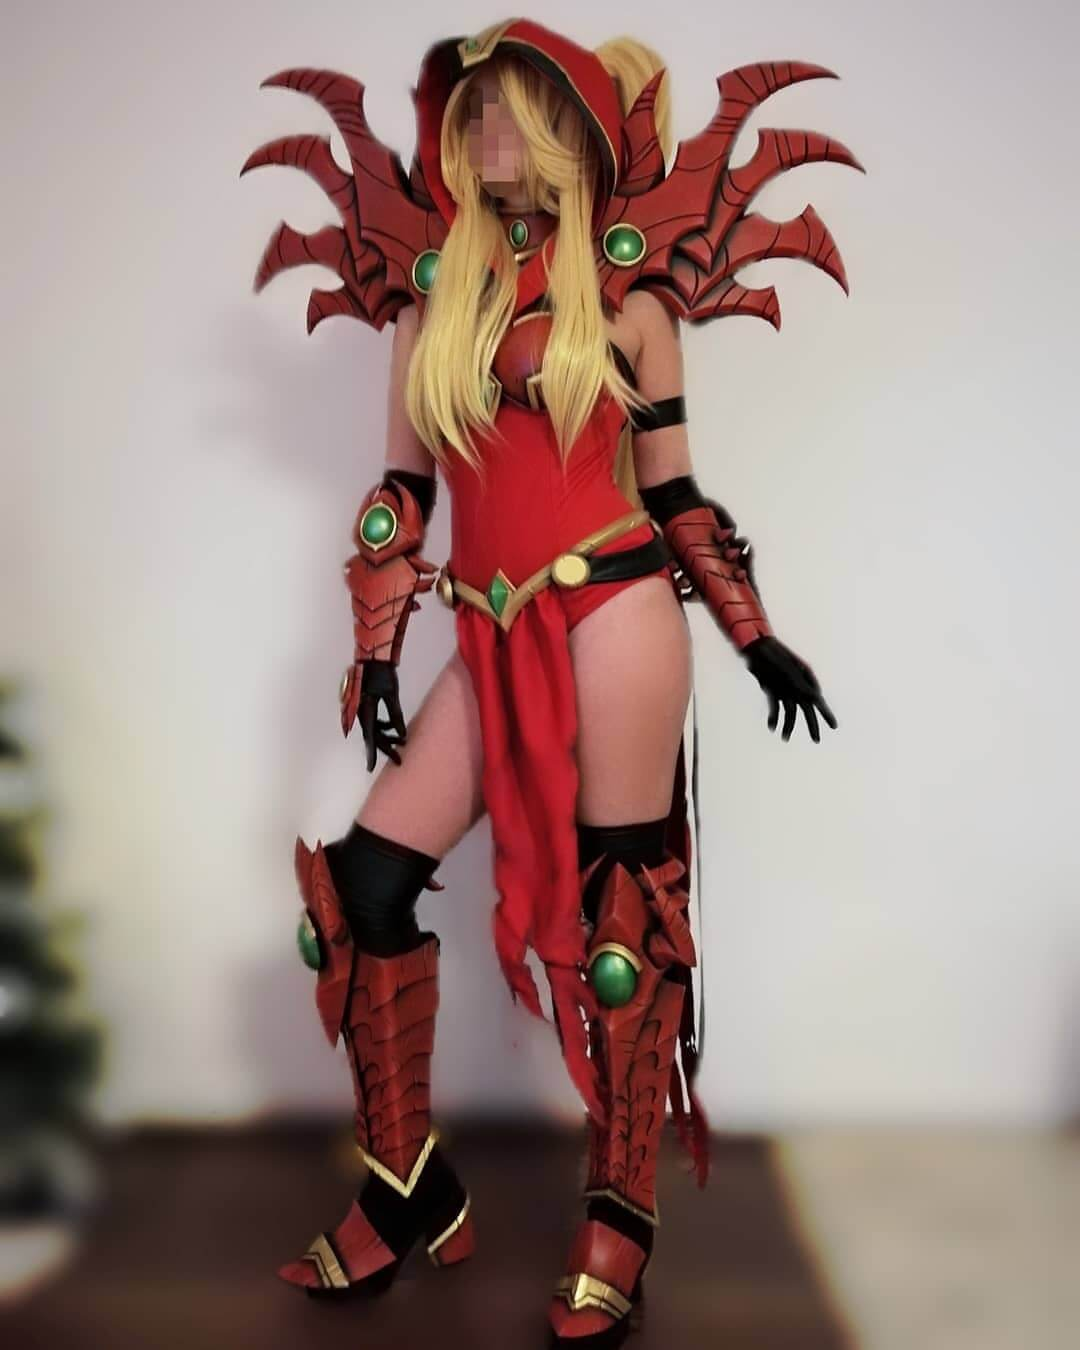 Valeera hot photos